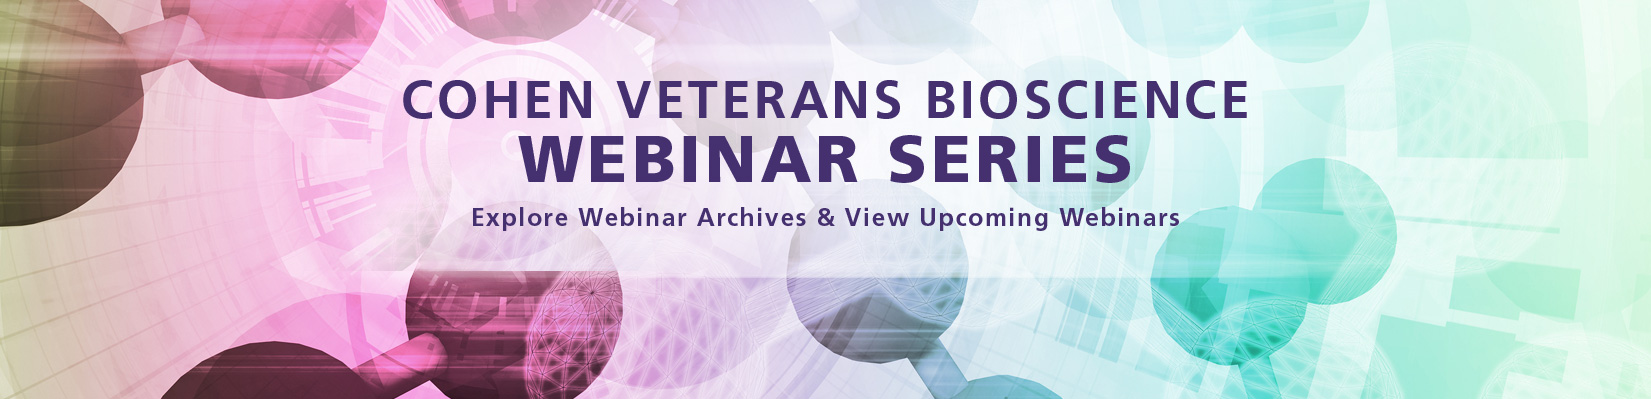 Cohen Veterans Bioscience Webinar Series - Webinars for PTSD, TBI Research